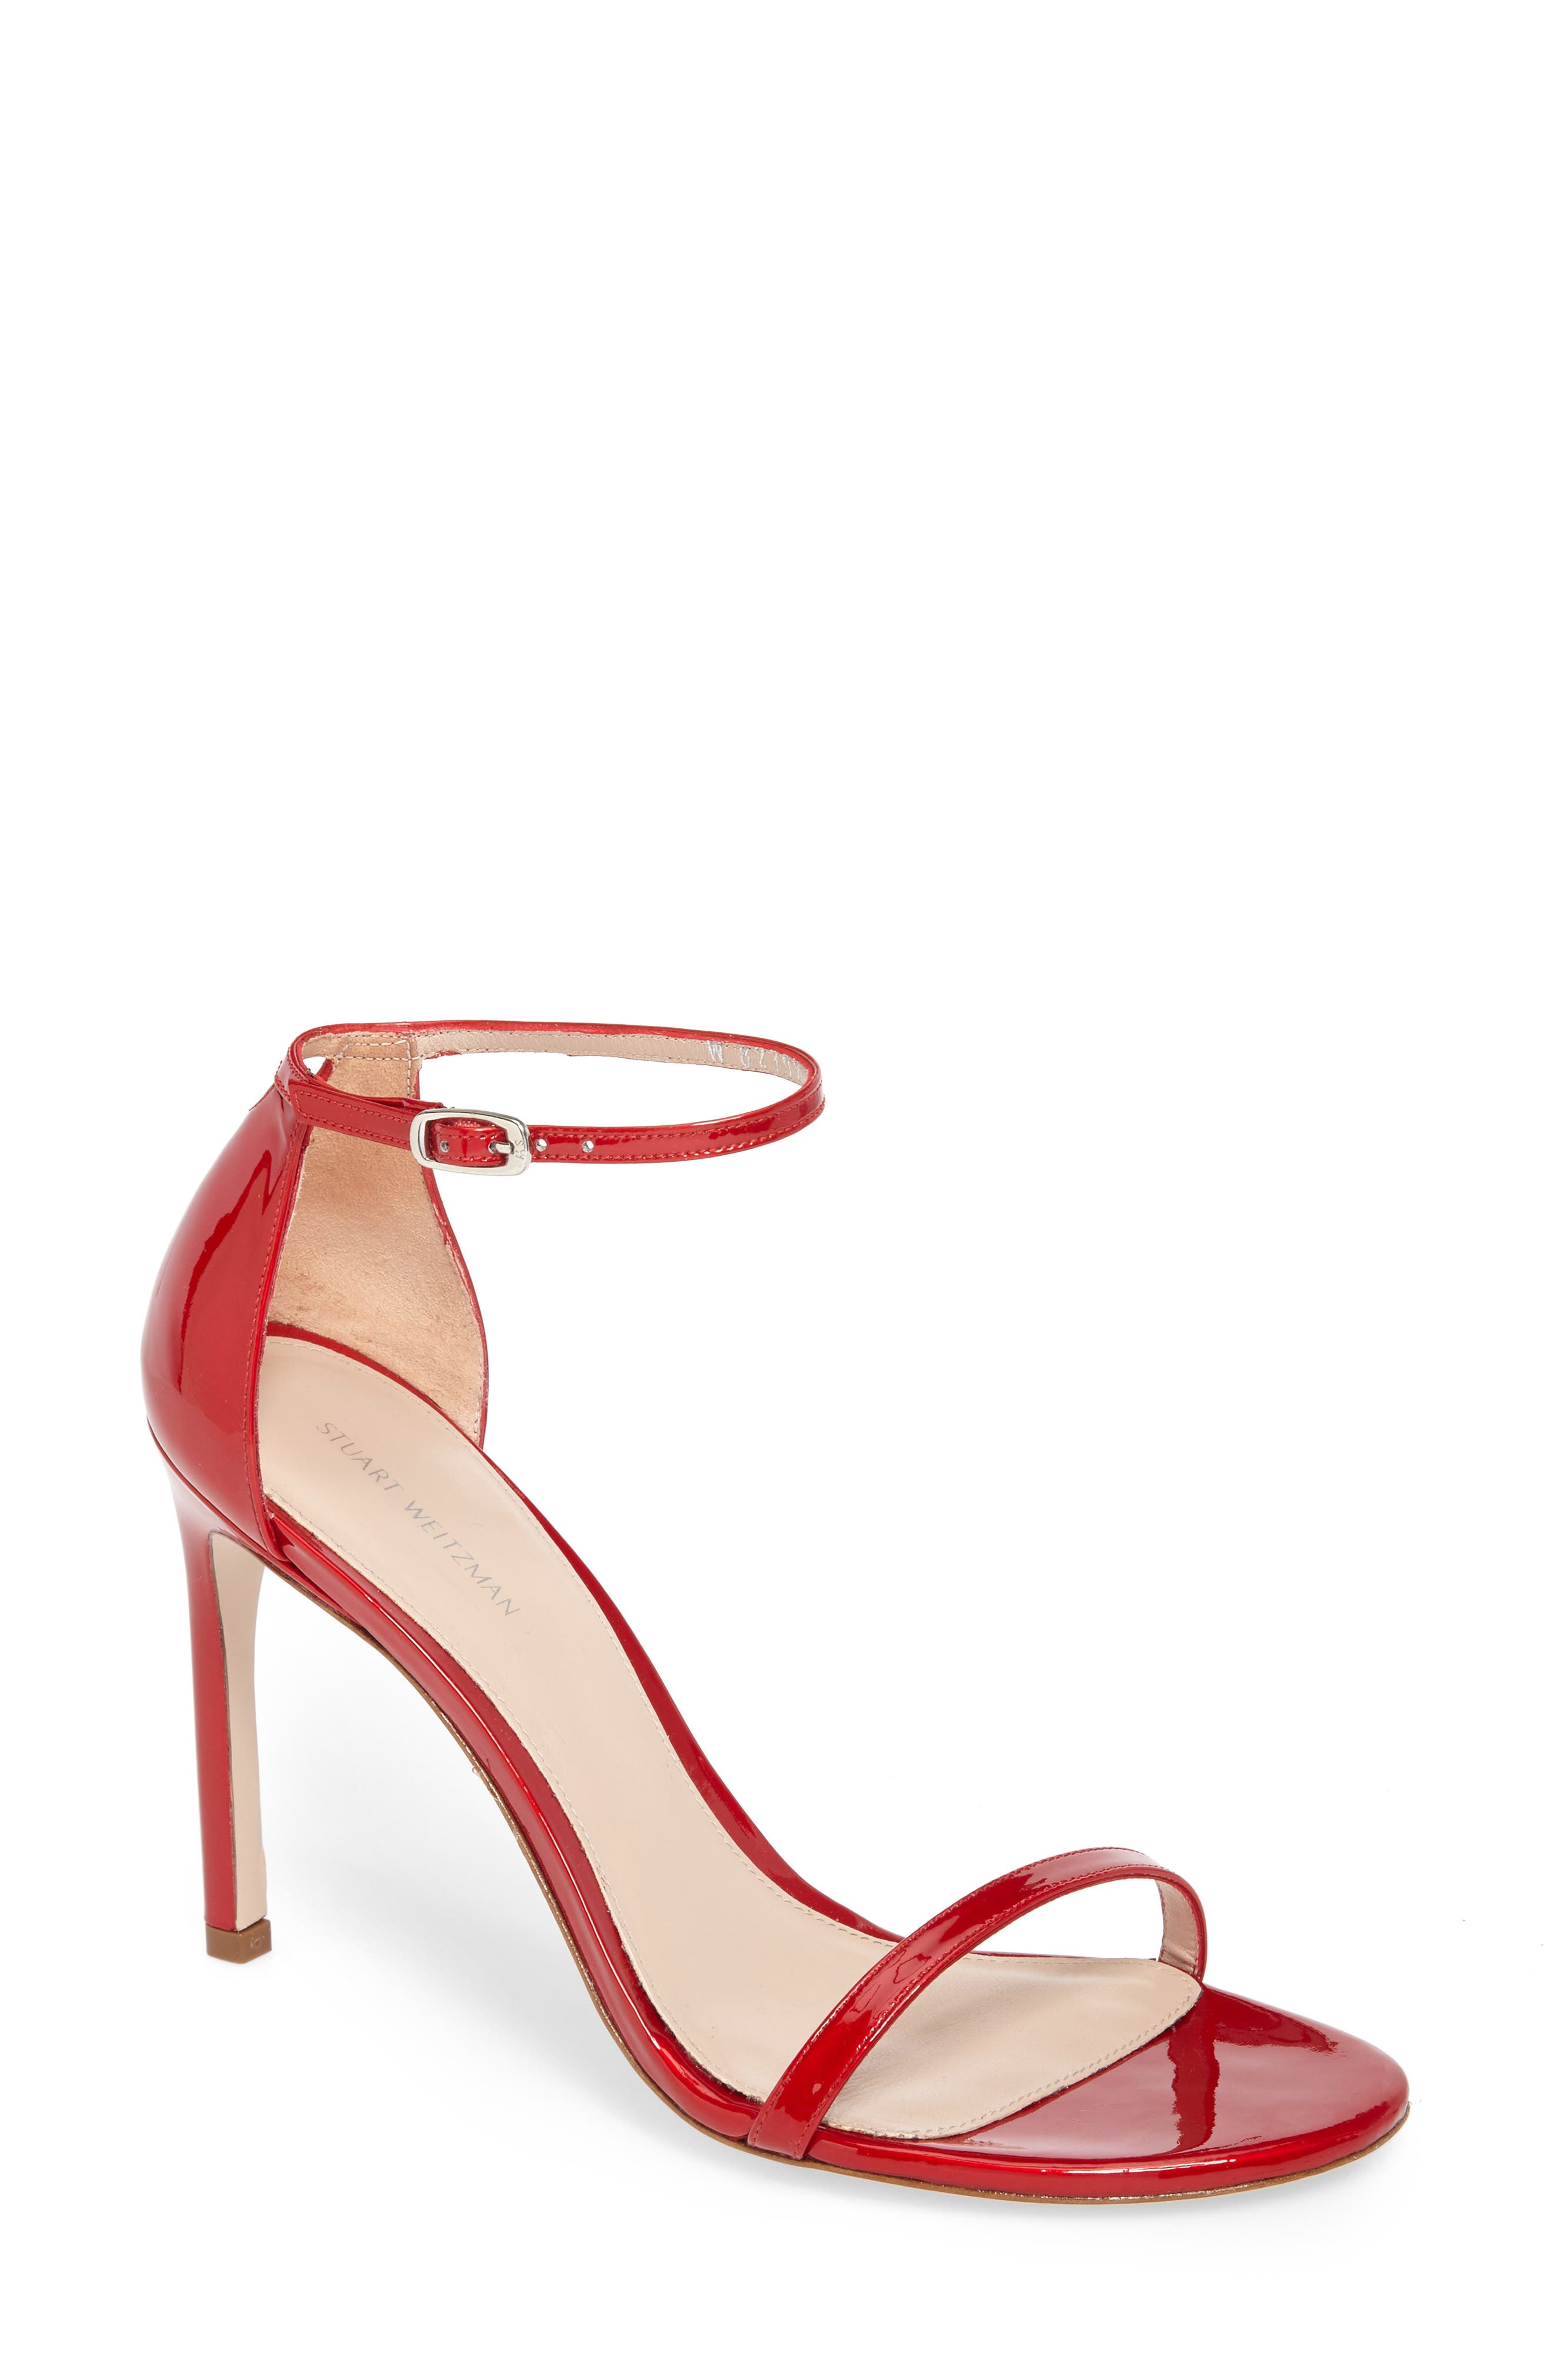 Nudistsong Ankle Strap Sandal,                             Main thumbnail 10, color,